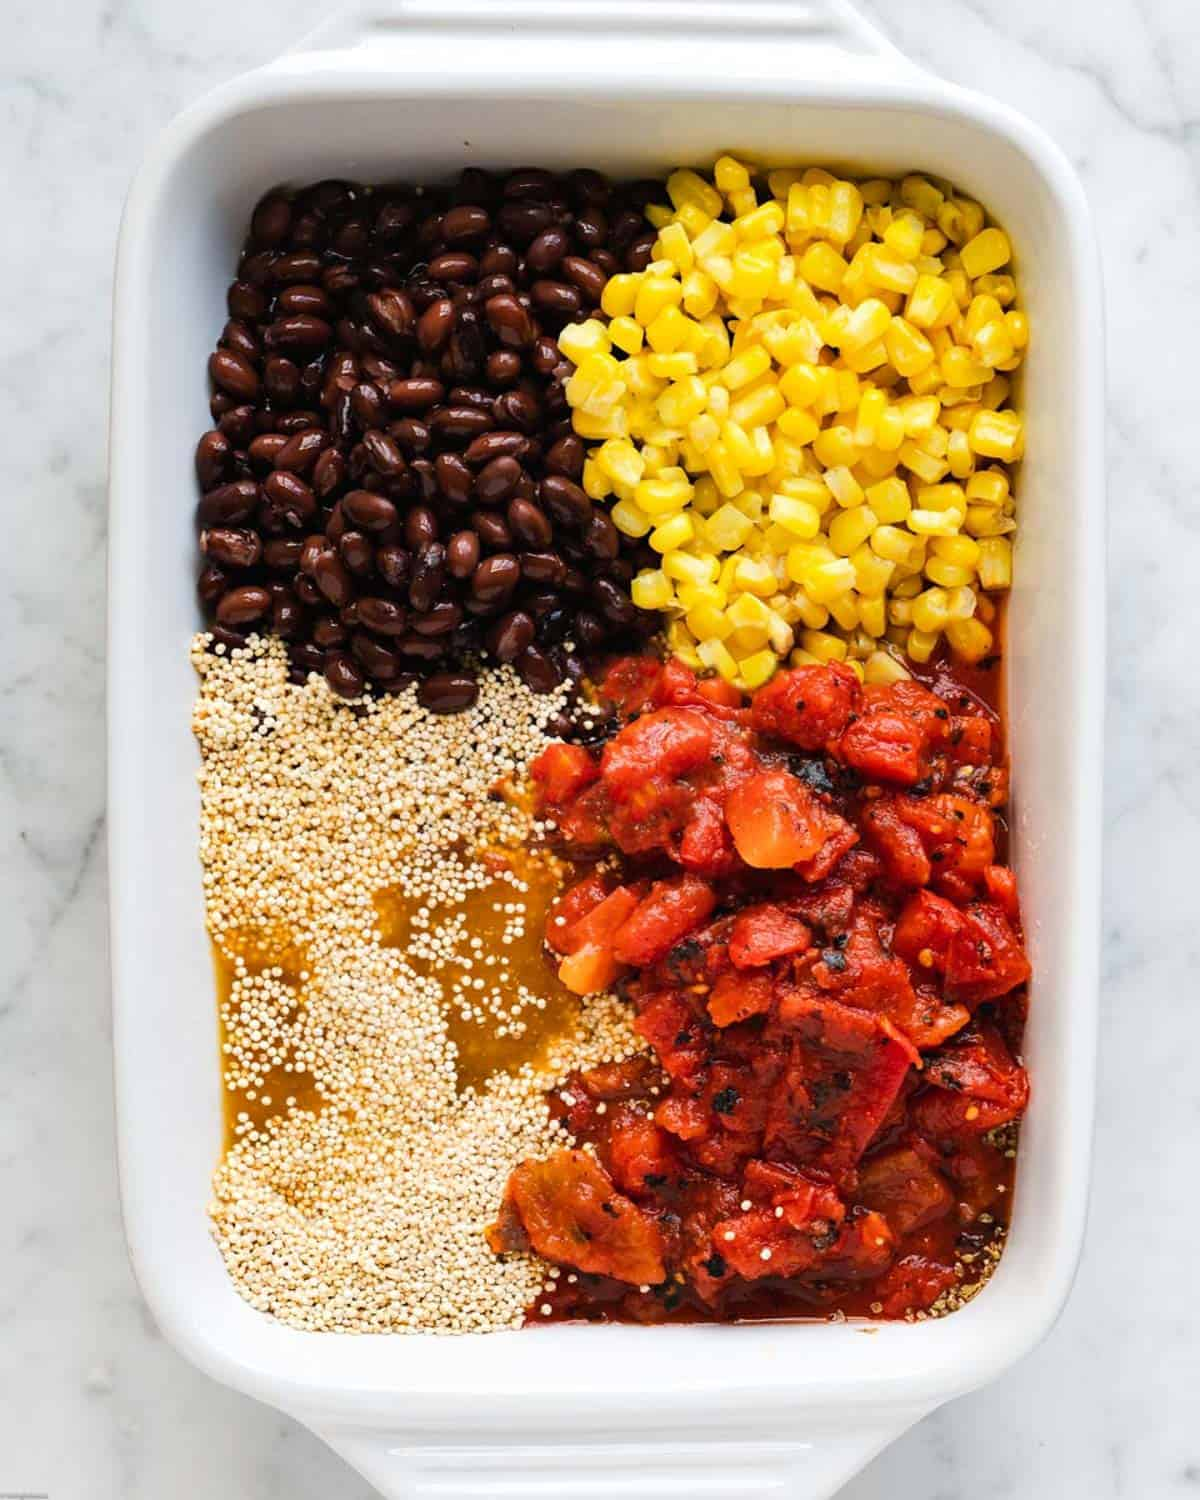 Diced tomatoes, corn kernels, black beans, spices, grain, and vegetable broth in a casserole dish.